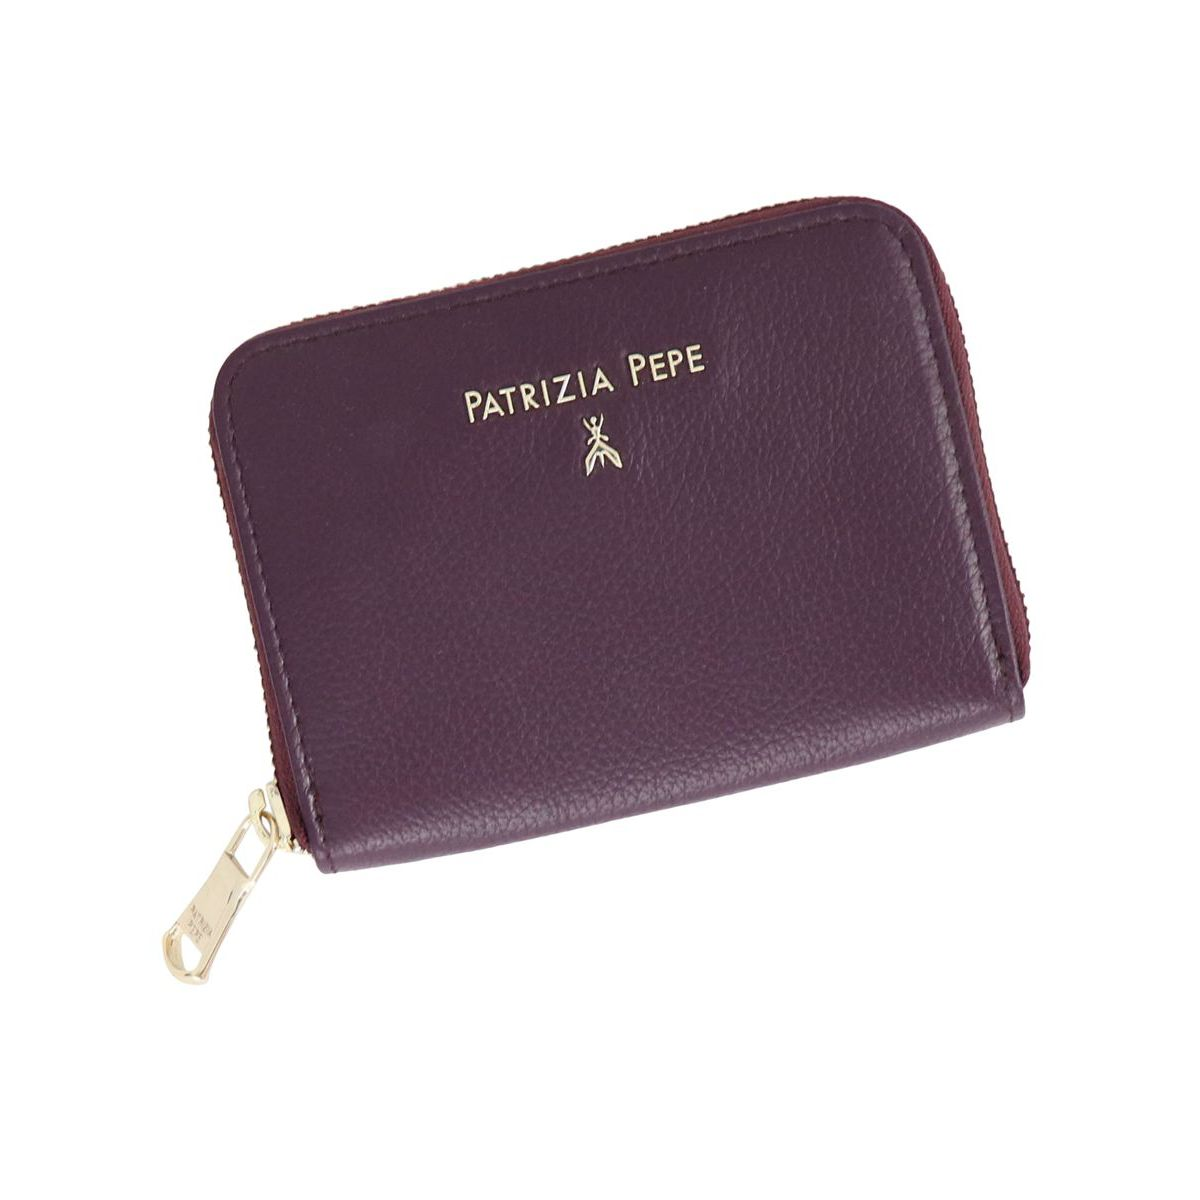 Textured leather wallet with logo Bordeaux Patrizia Pepe